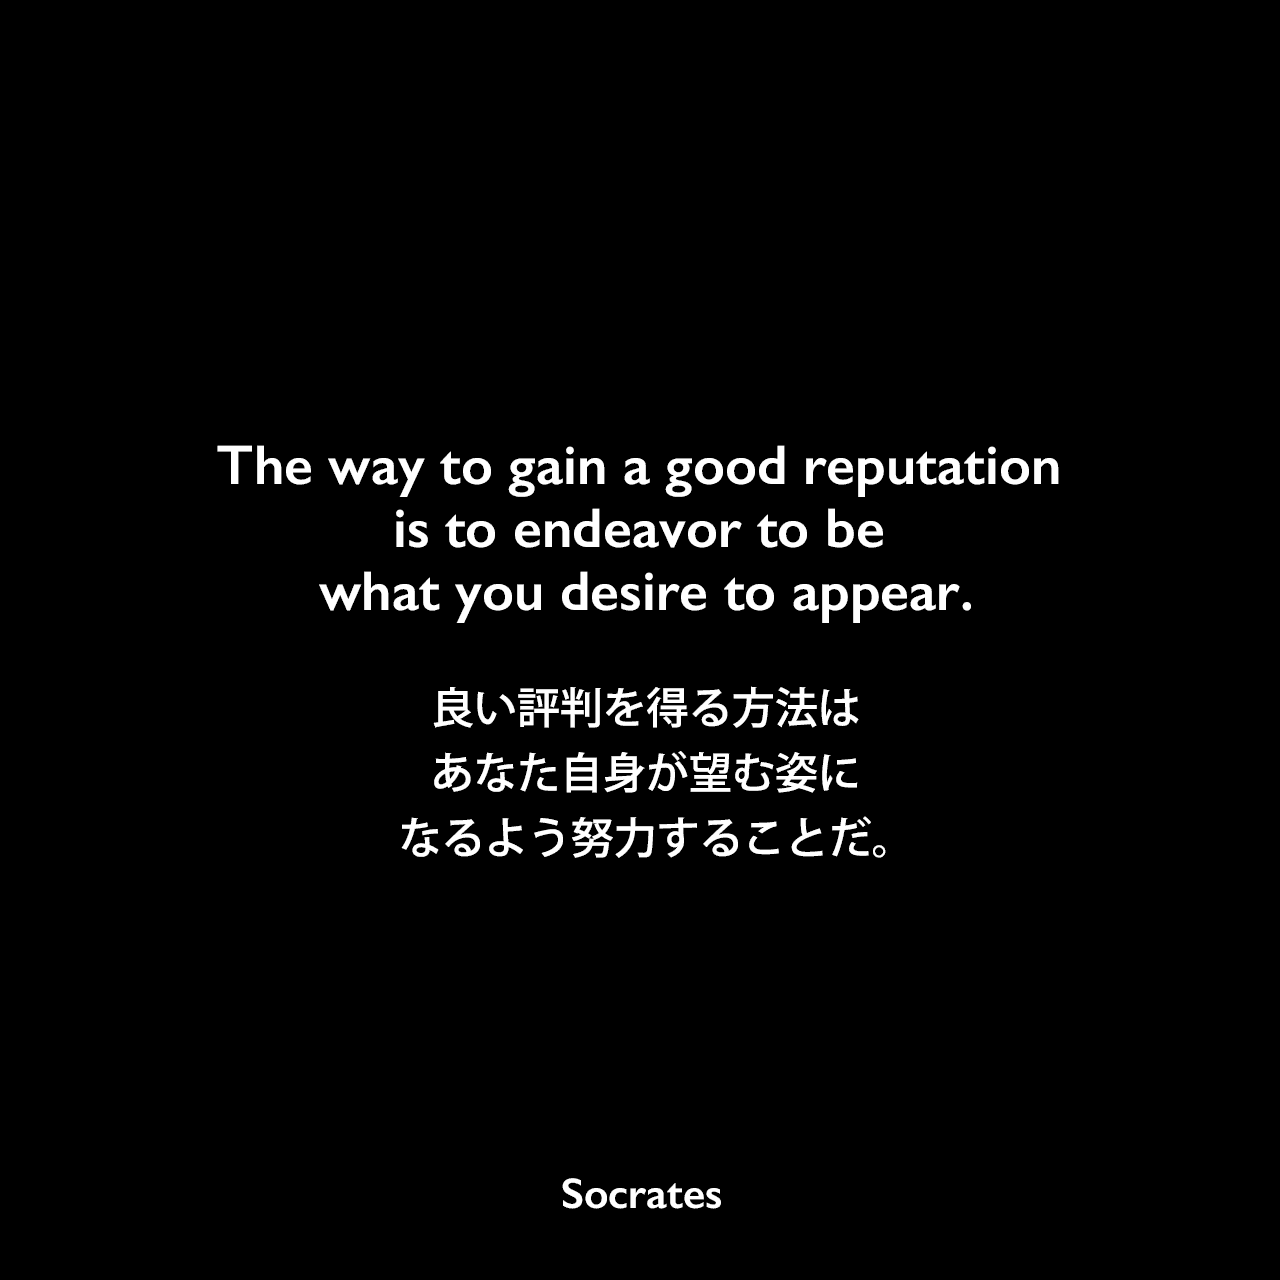 The way to gain a good reputation is to endeavor to be what you desire to appear.良い評判を得る方法は、あなた自身が望む姿になるよう努力することだ。Socrates